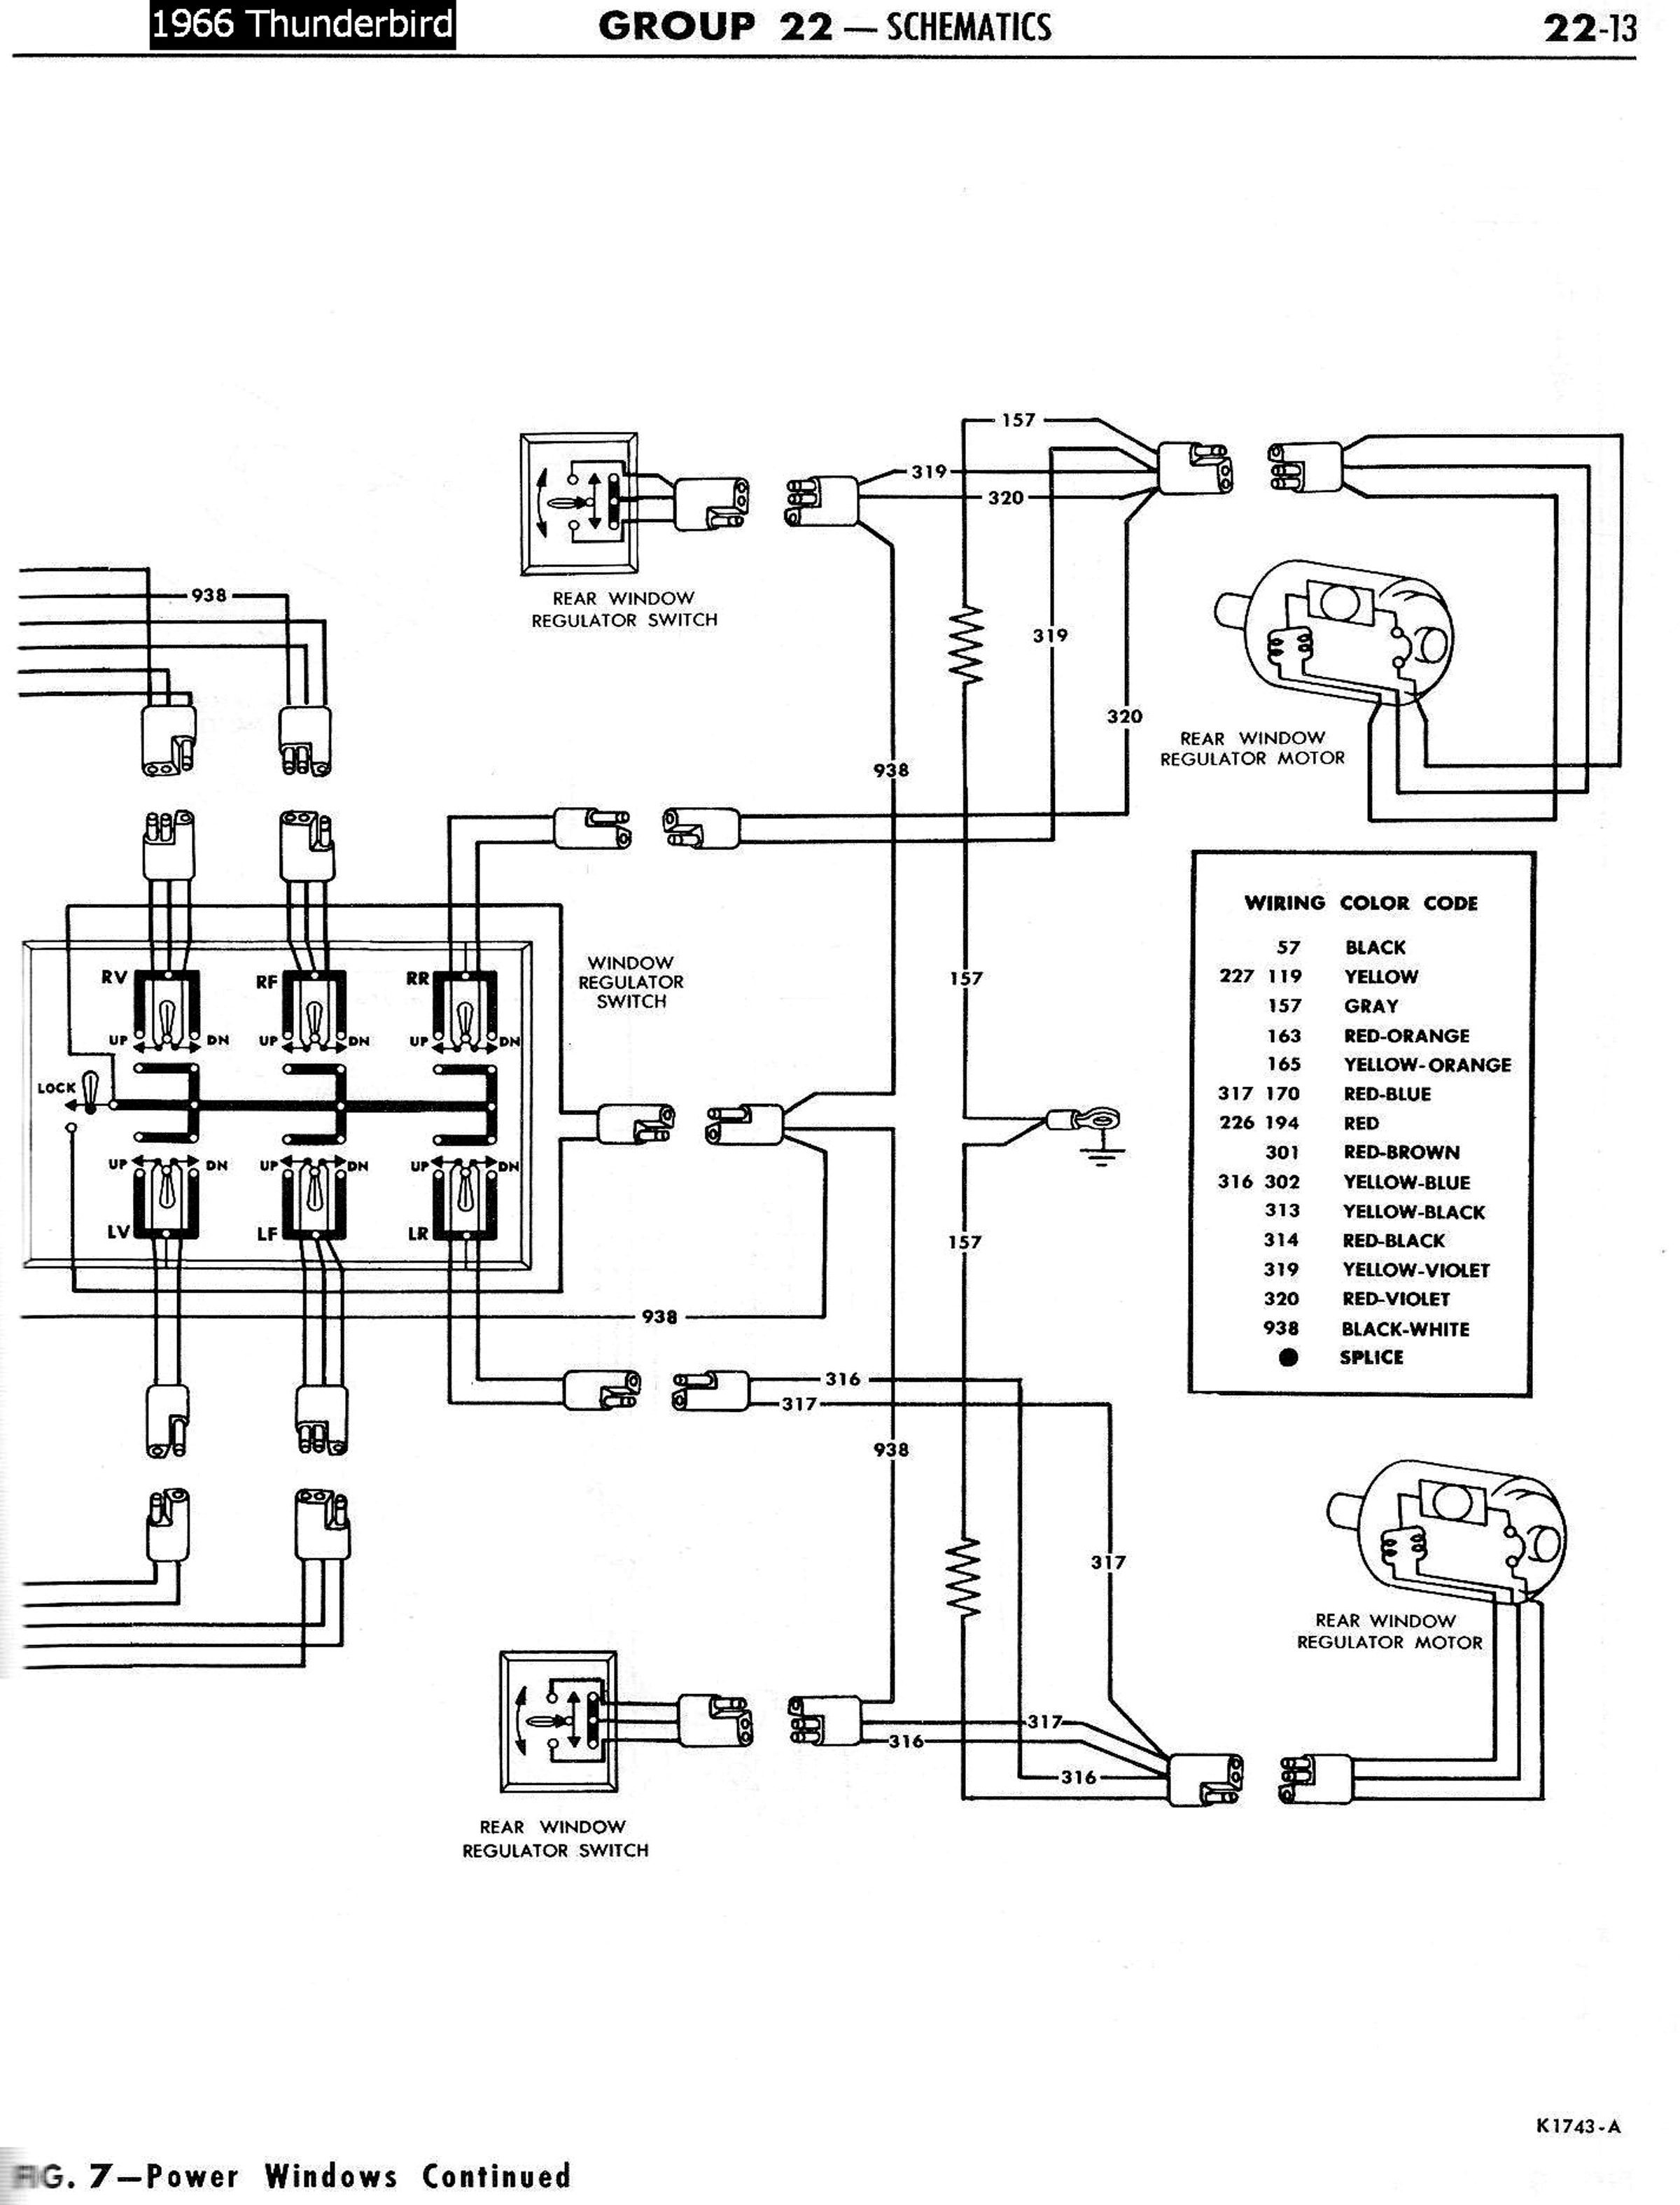 66 Thunderbird Radio Wiring Diagram : 35 Wiring Diagram